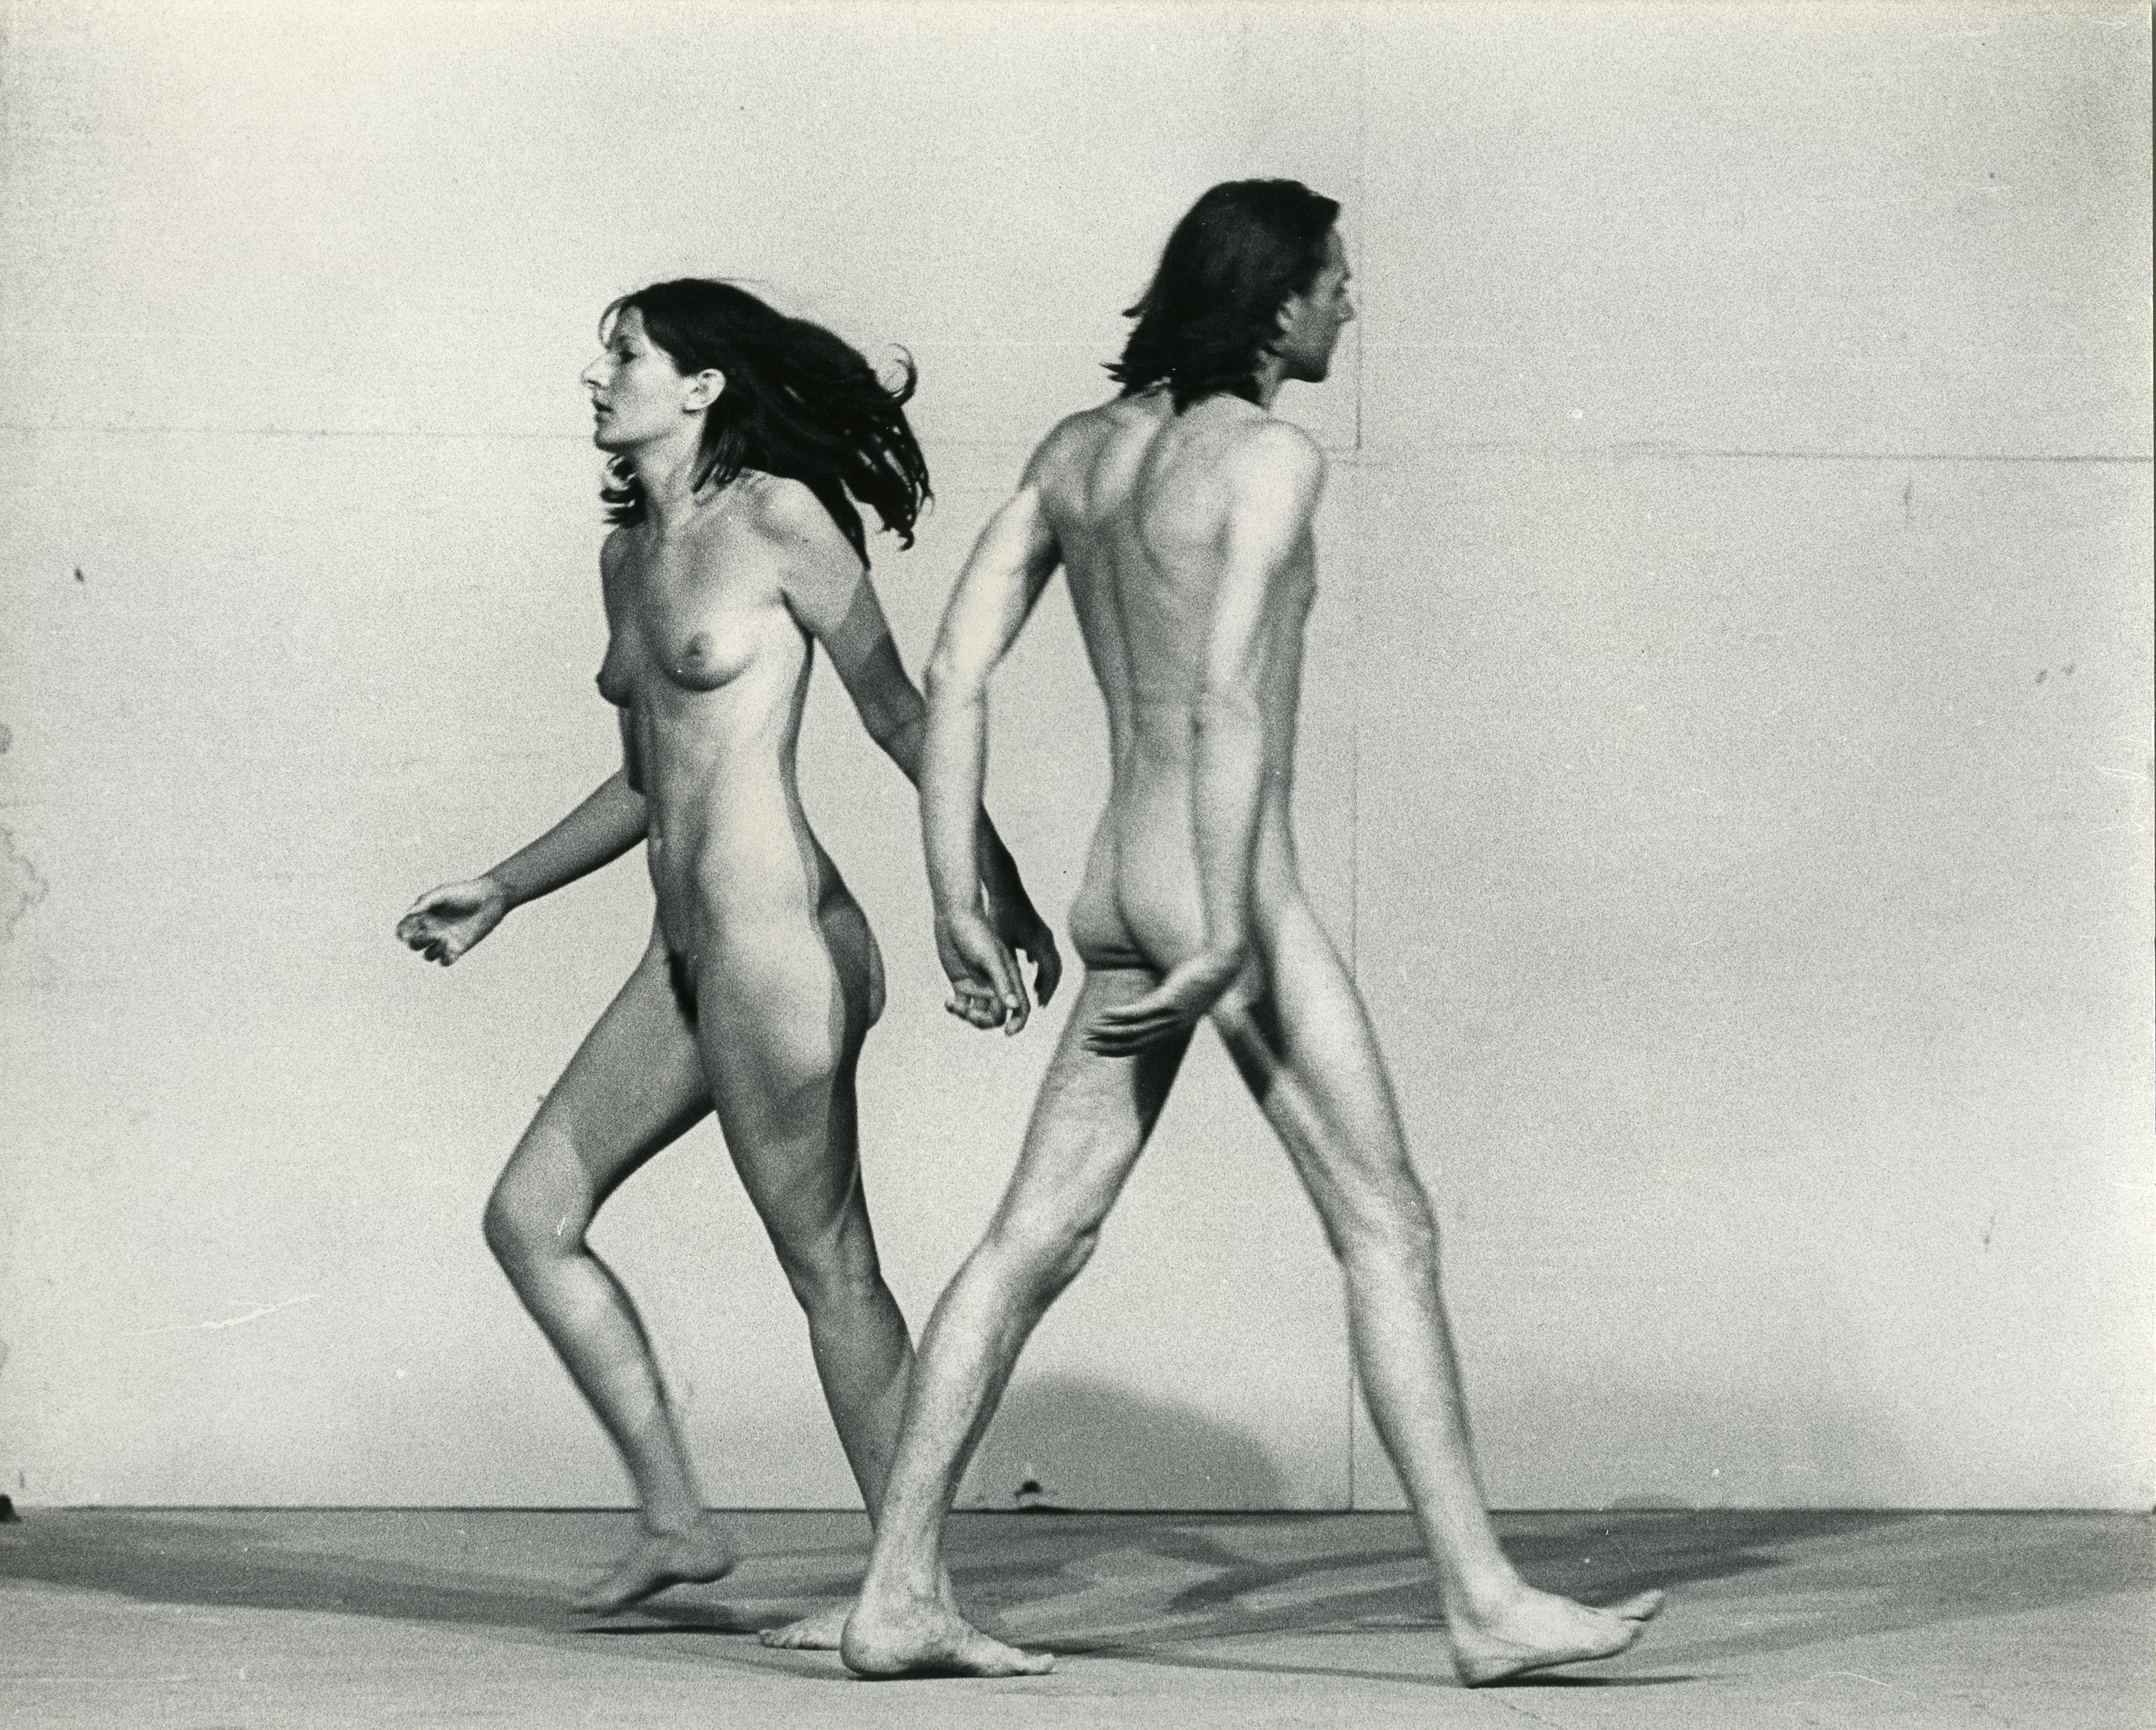 Ulay/Marina Abramovi_ Relation in Space Performance 58 minutes XXXVIII Biennale, Giudecca, Venice July, 1976 © Ulay/Marina Abramovi_/Bildupphovsrätt 2017 Photo: © Jaap de Graaf Courtesy of the Marina Abramovi_ Archives